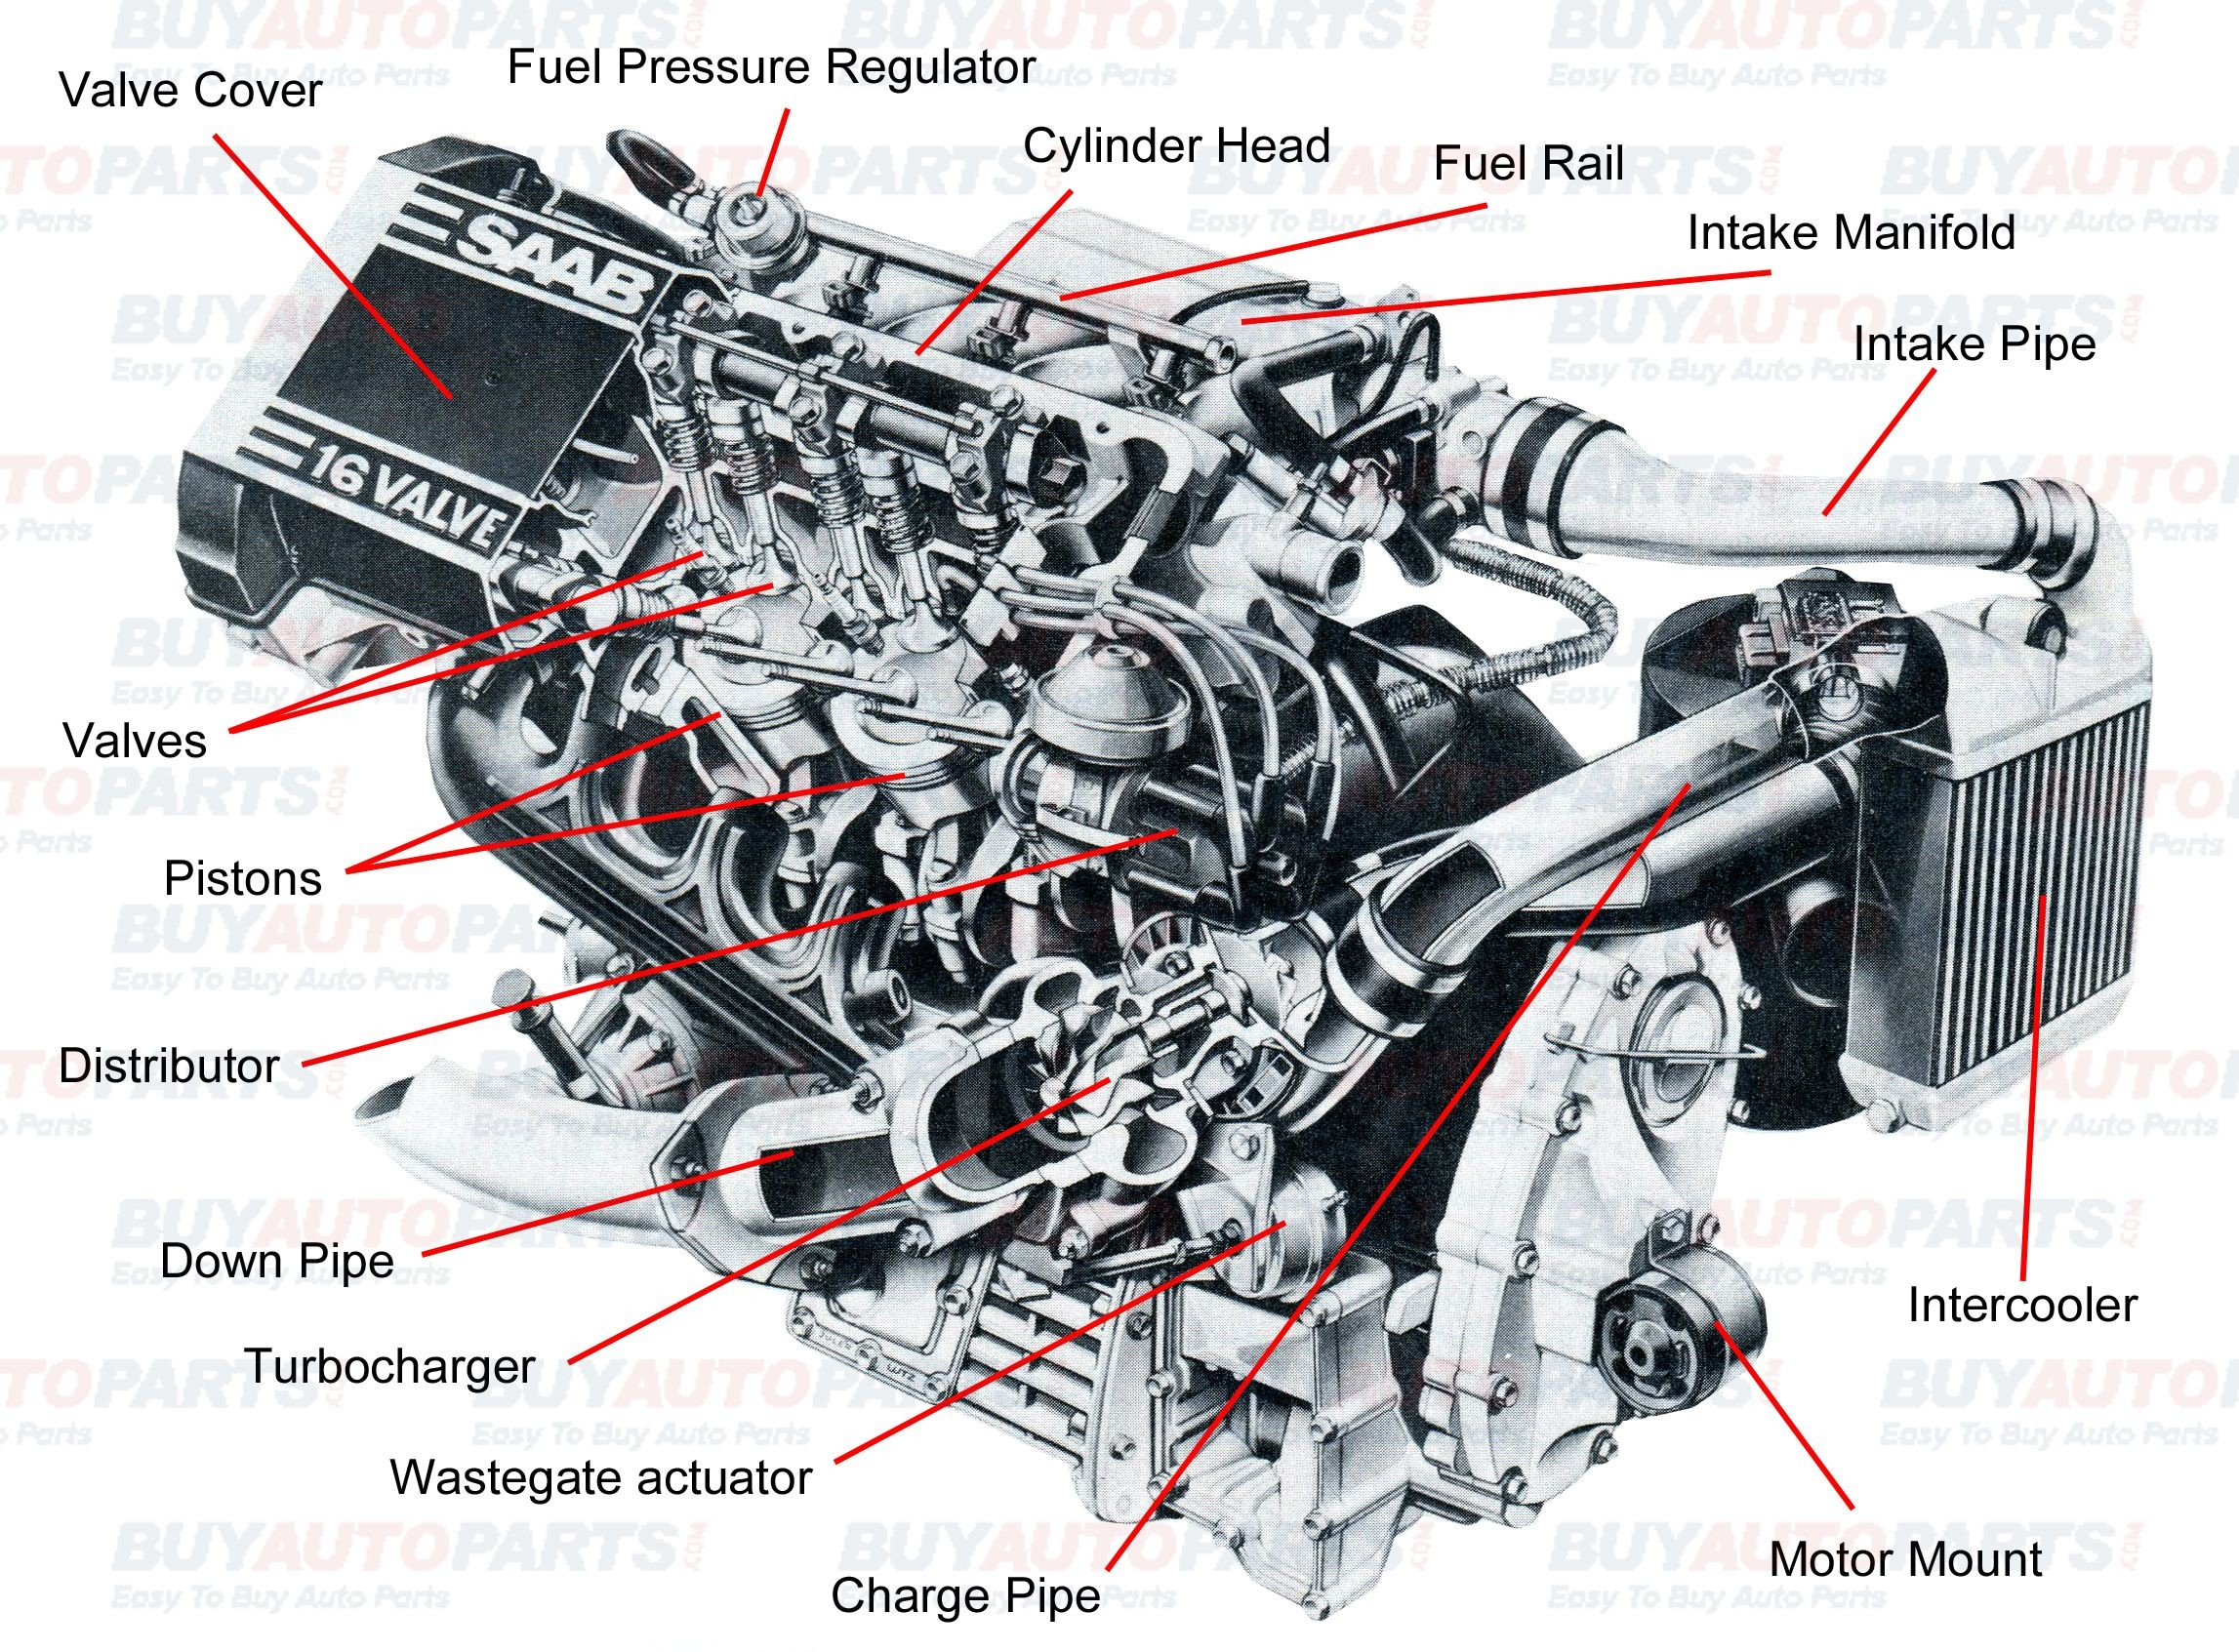 Car Undercarriage Diagram All Internal Bustion Engines Have the Same Basic Ponents the Of Car Undercarriage Diagram